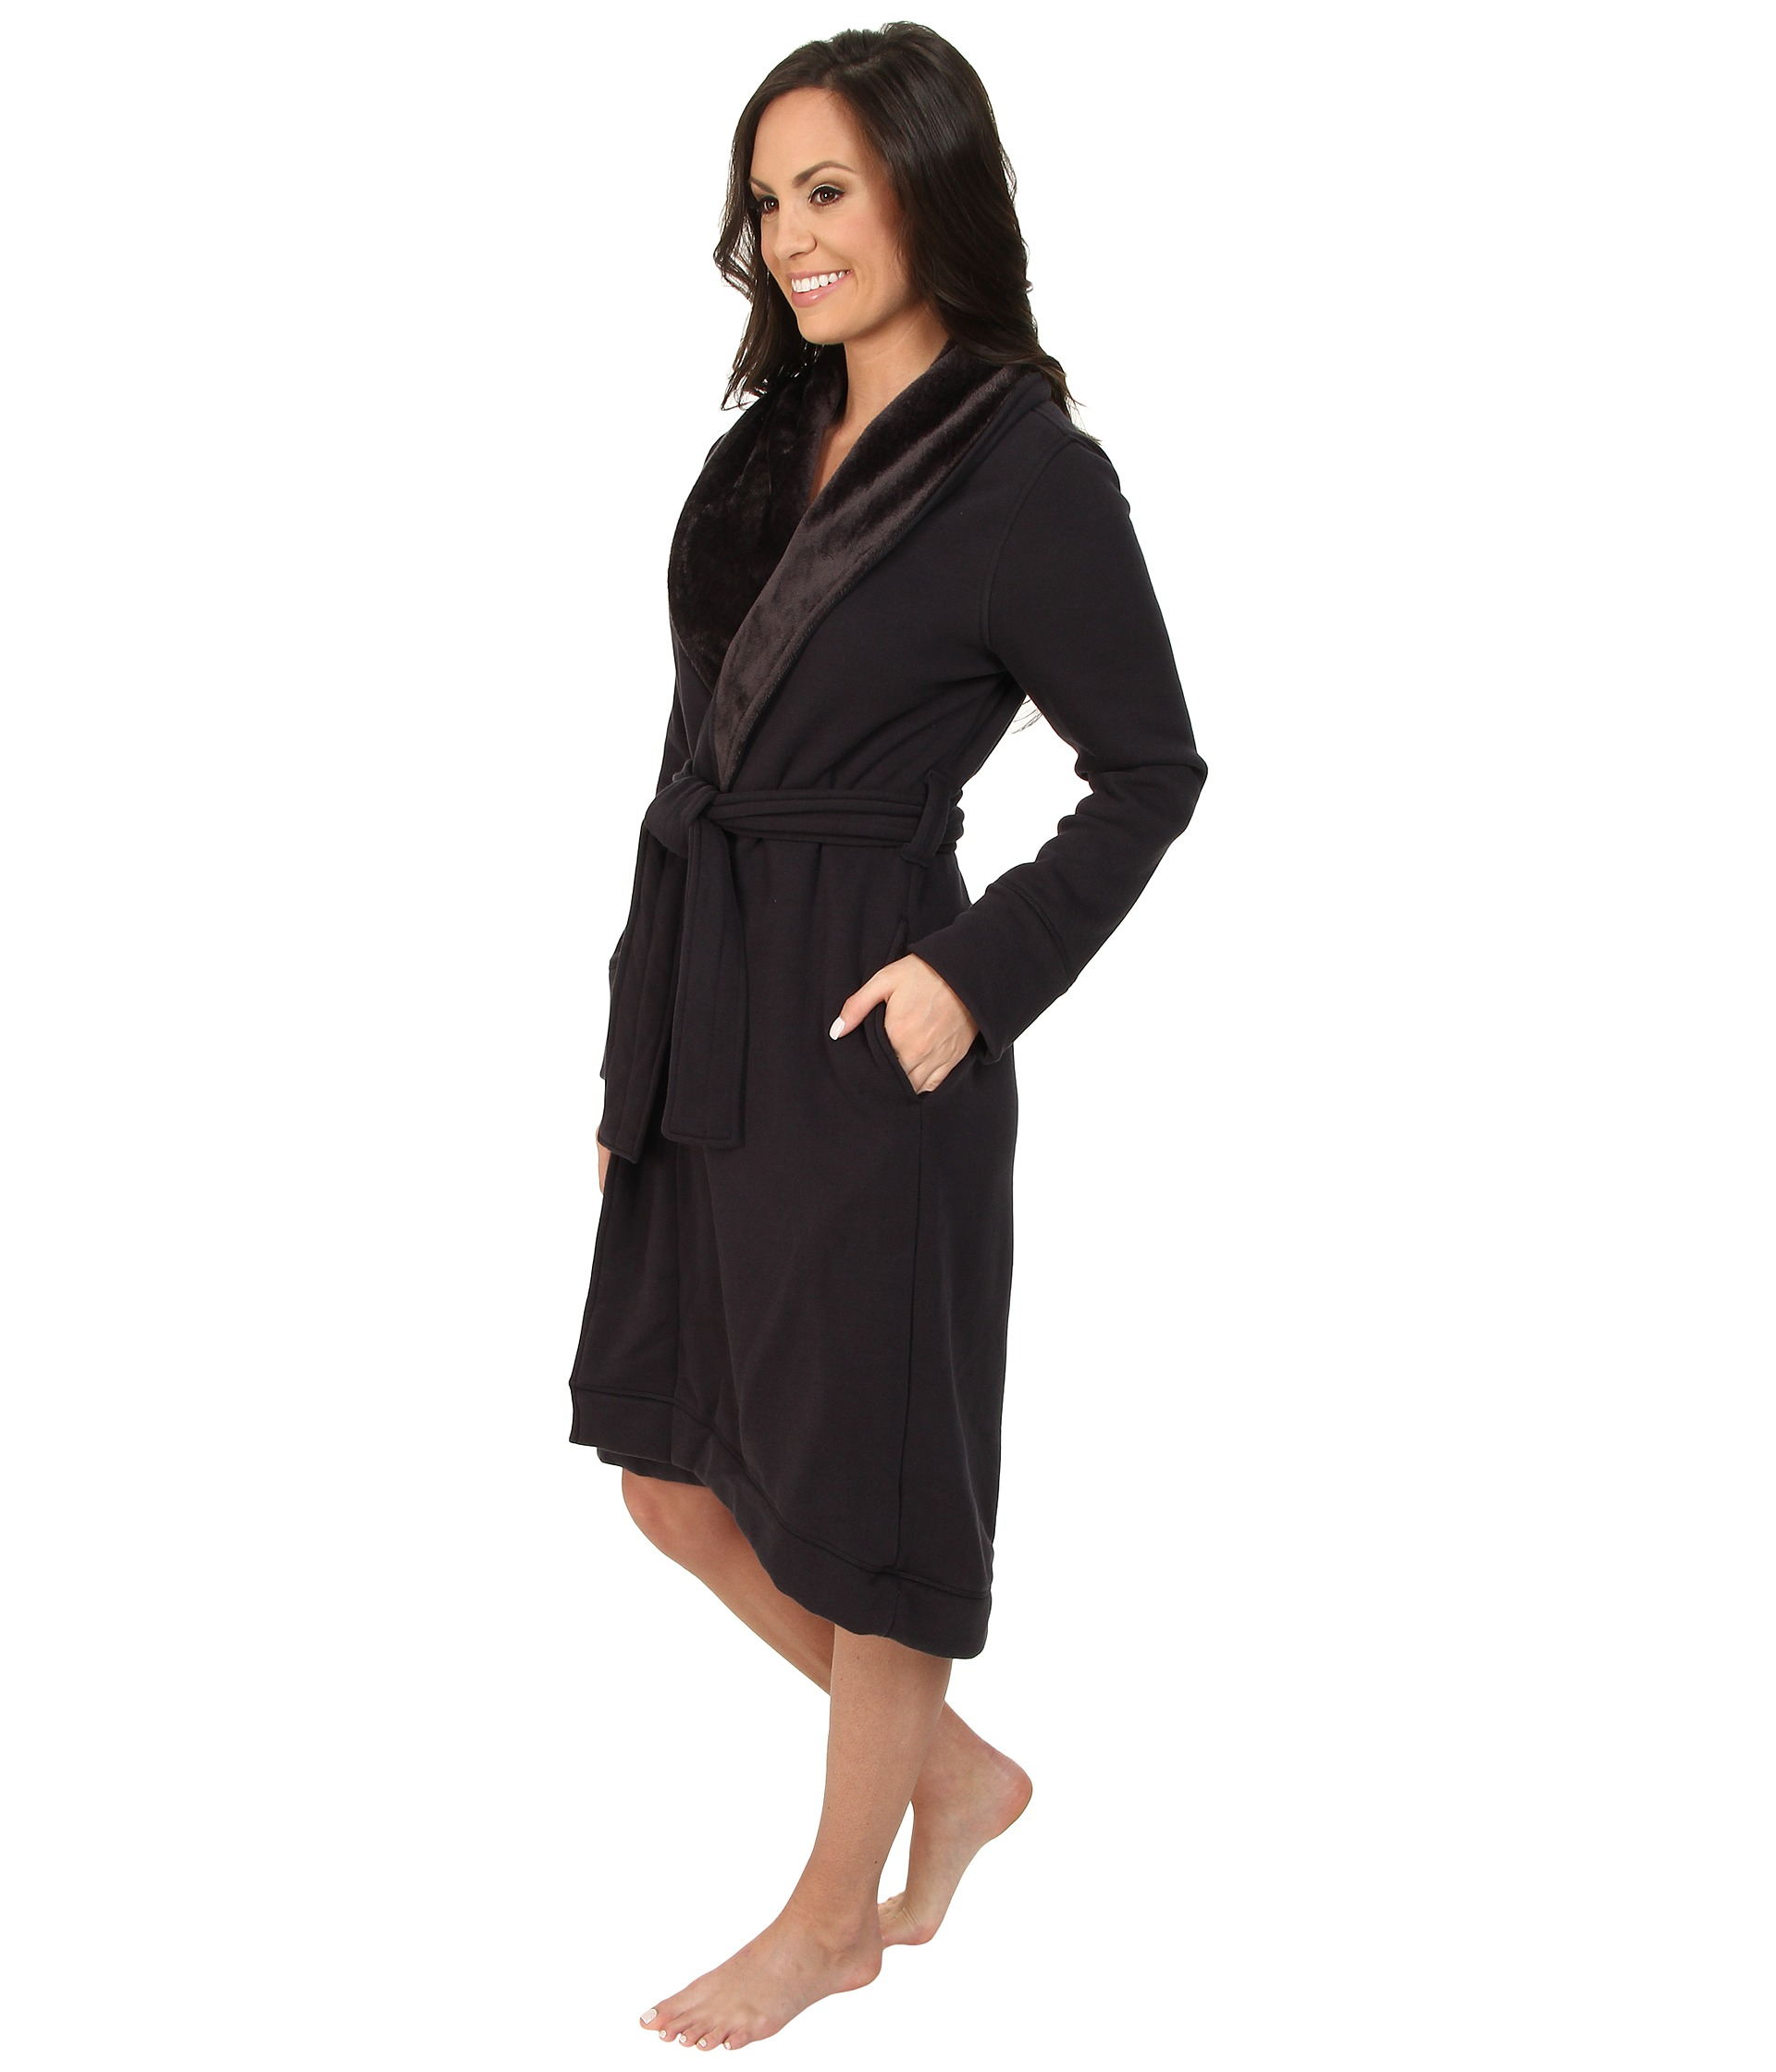 Ugg Duffield Robe Charcoal 23e51e03d